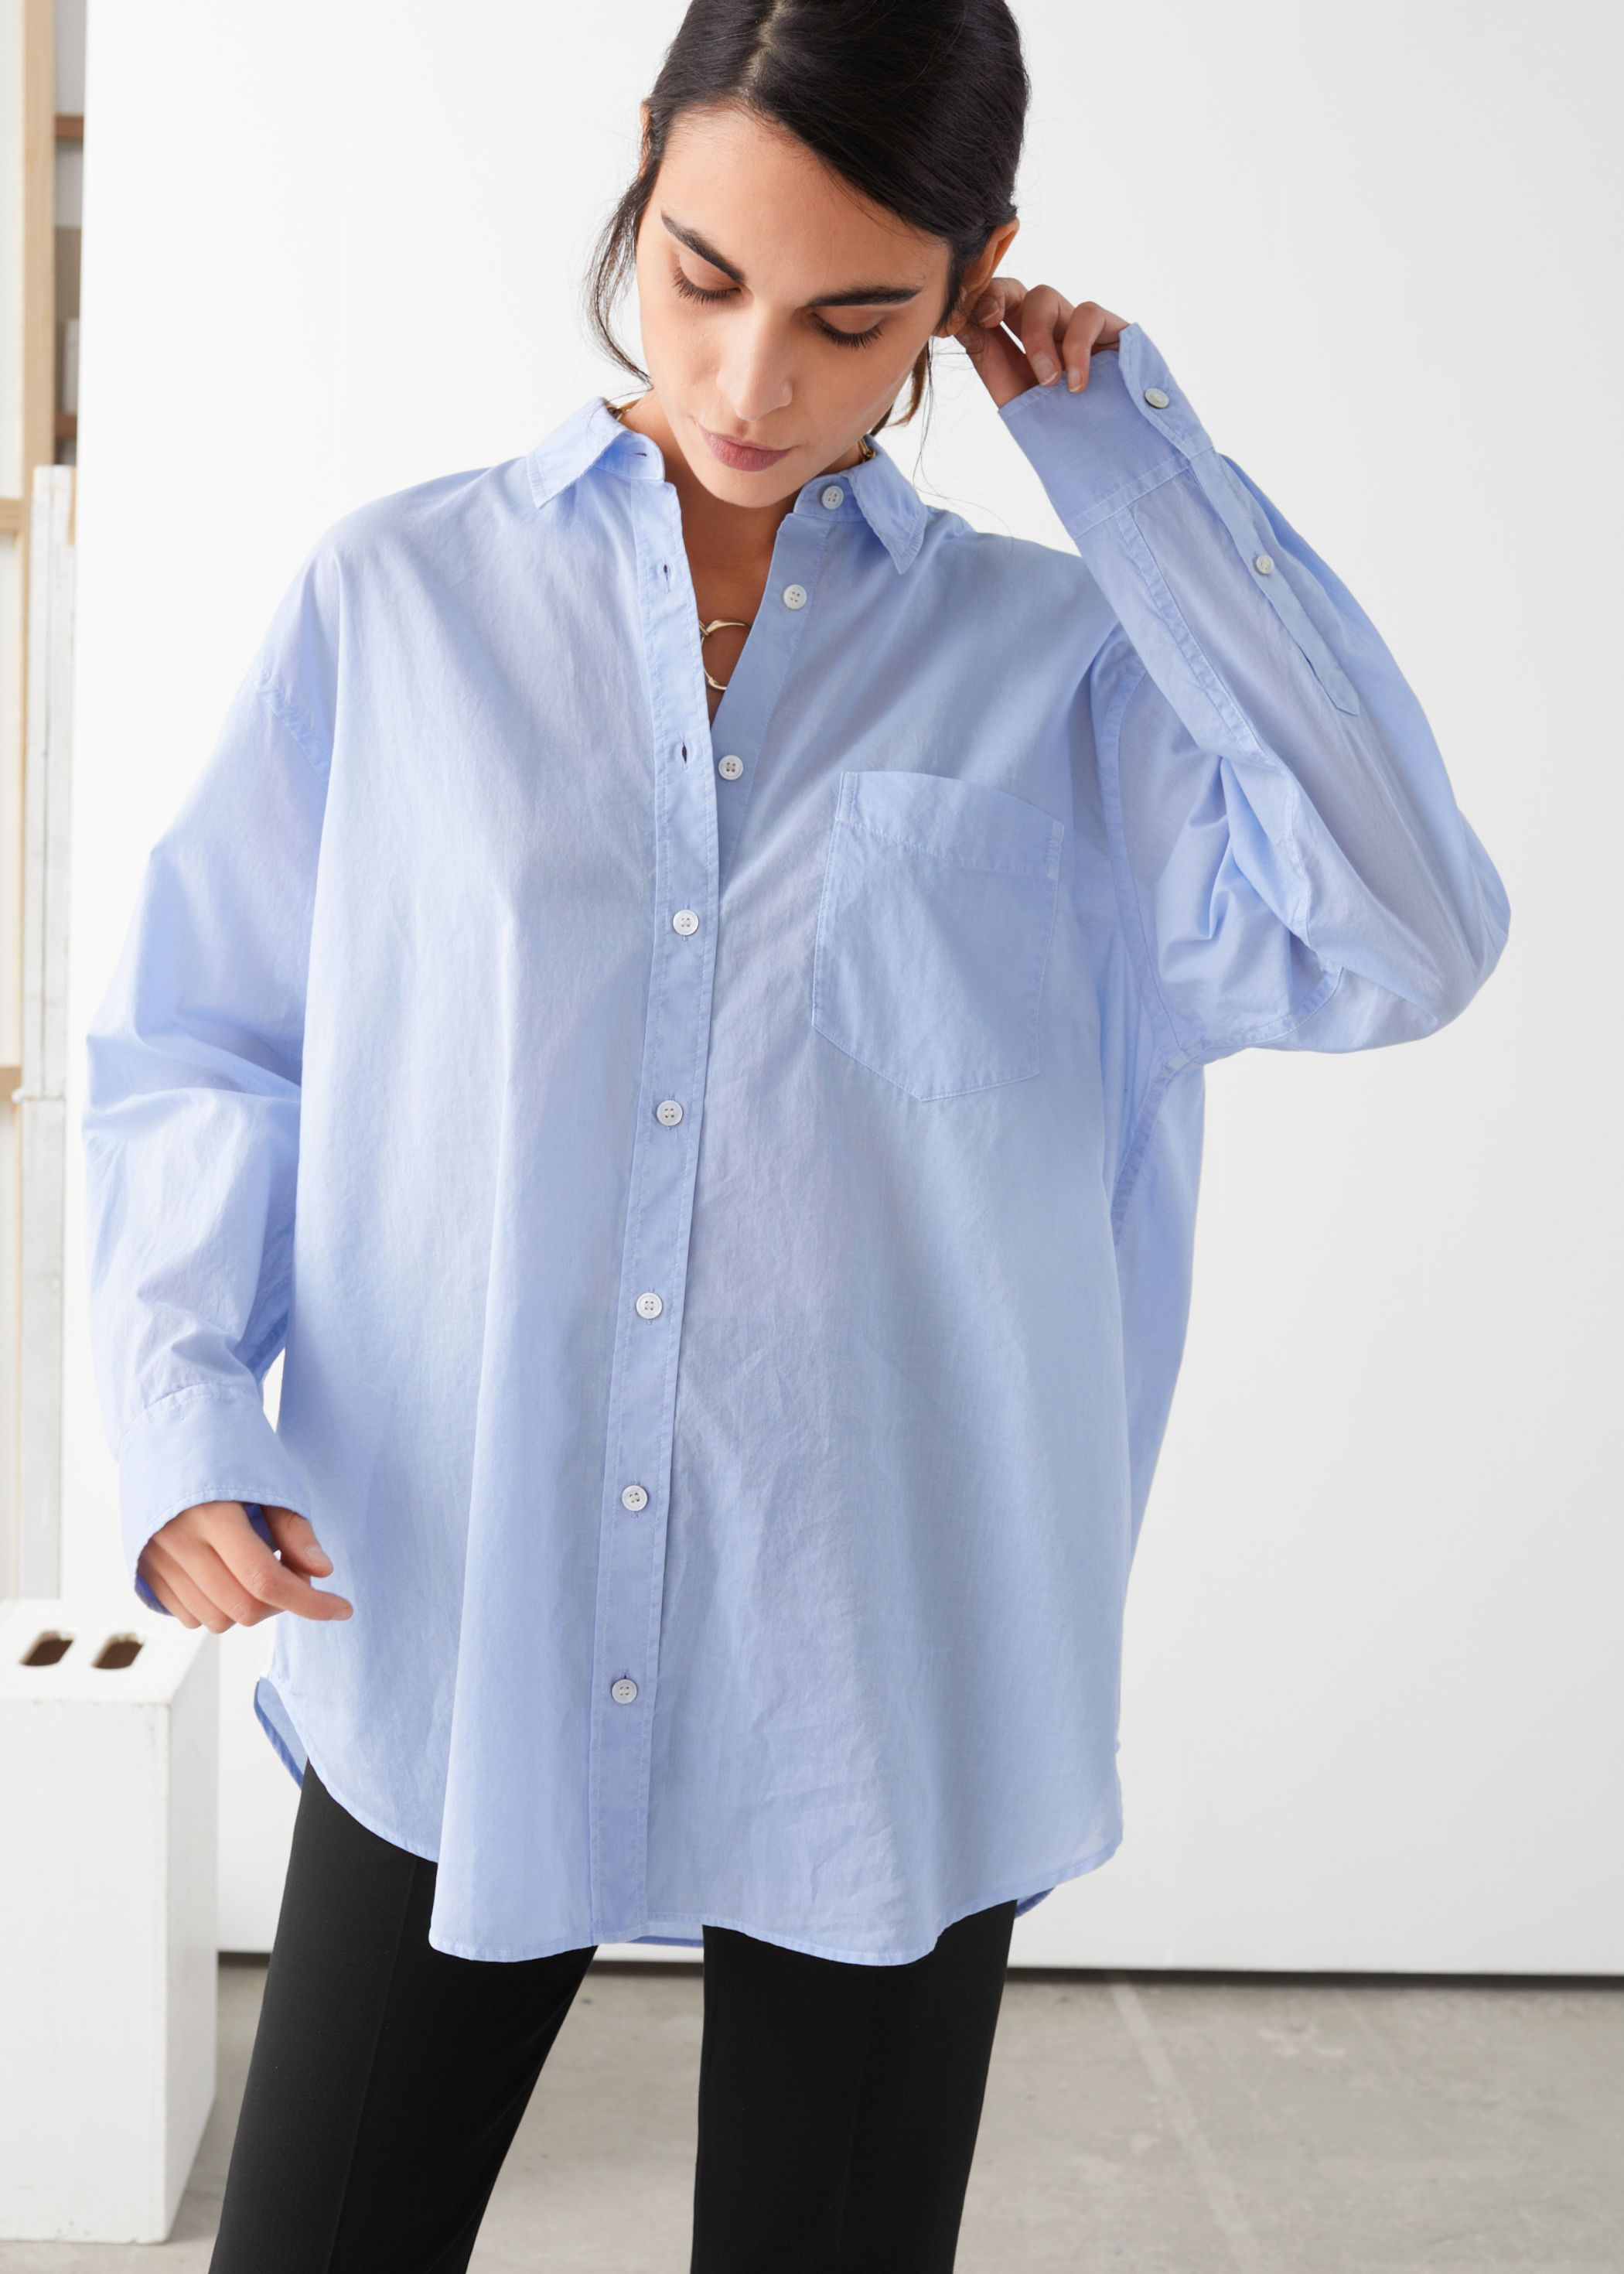 other-stories-oversized-organic-cotton-button-up-shirt